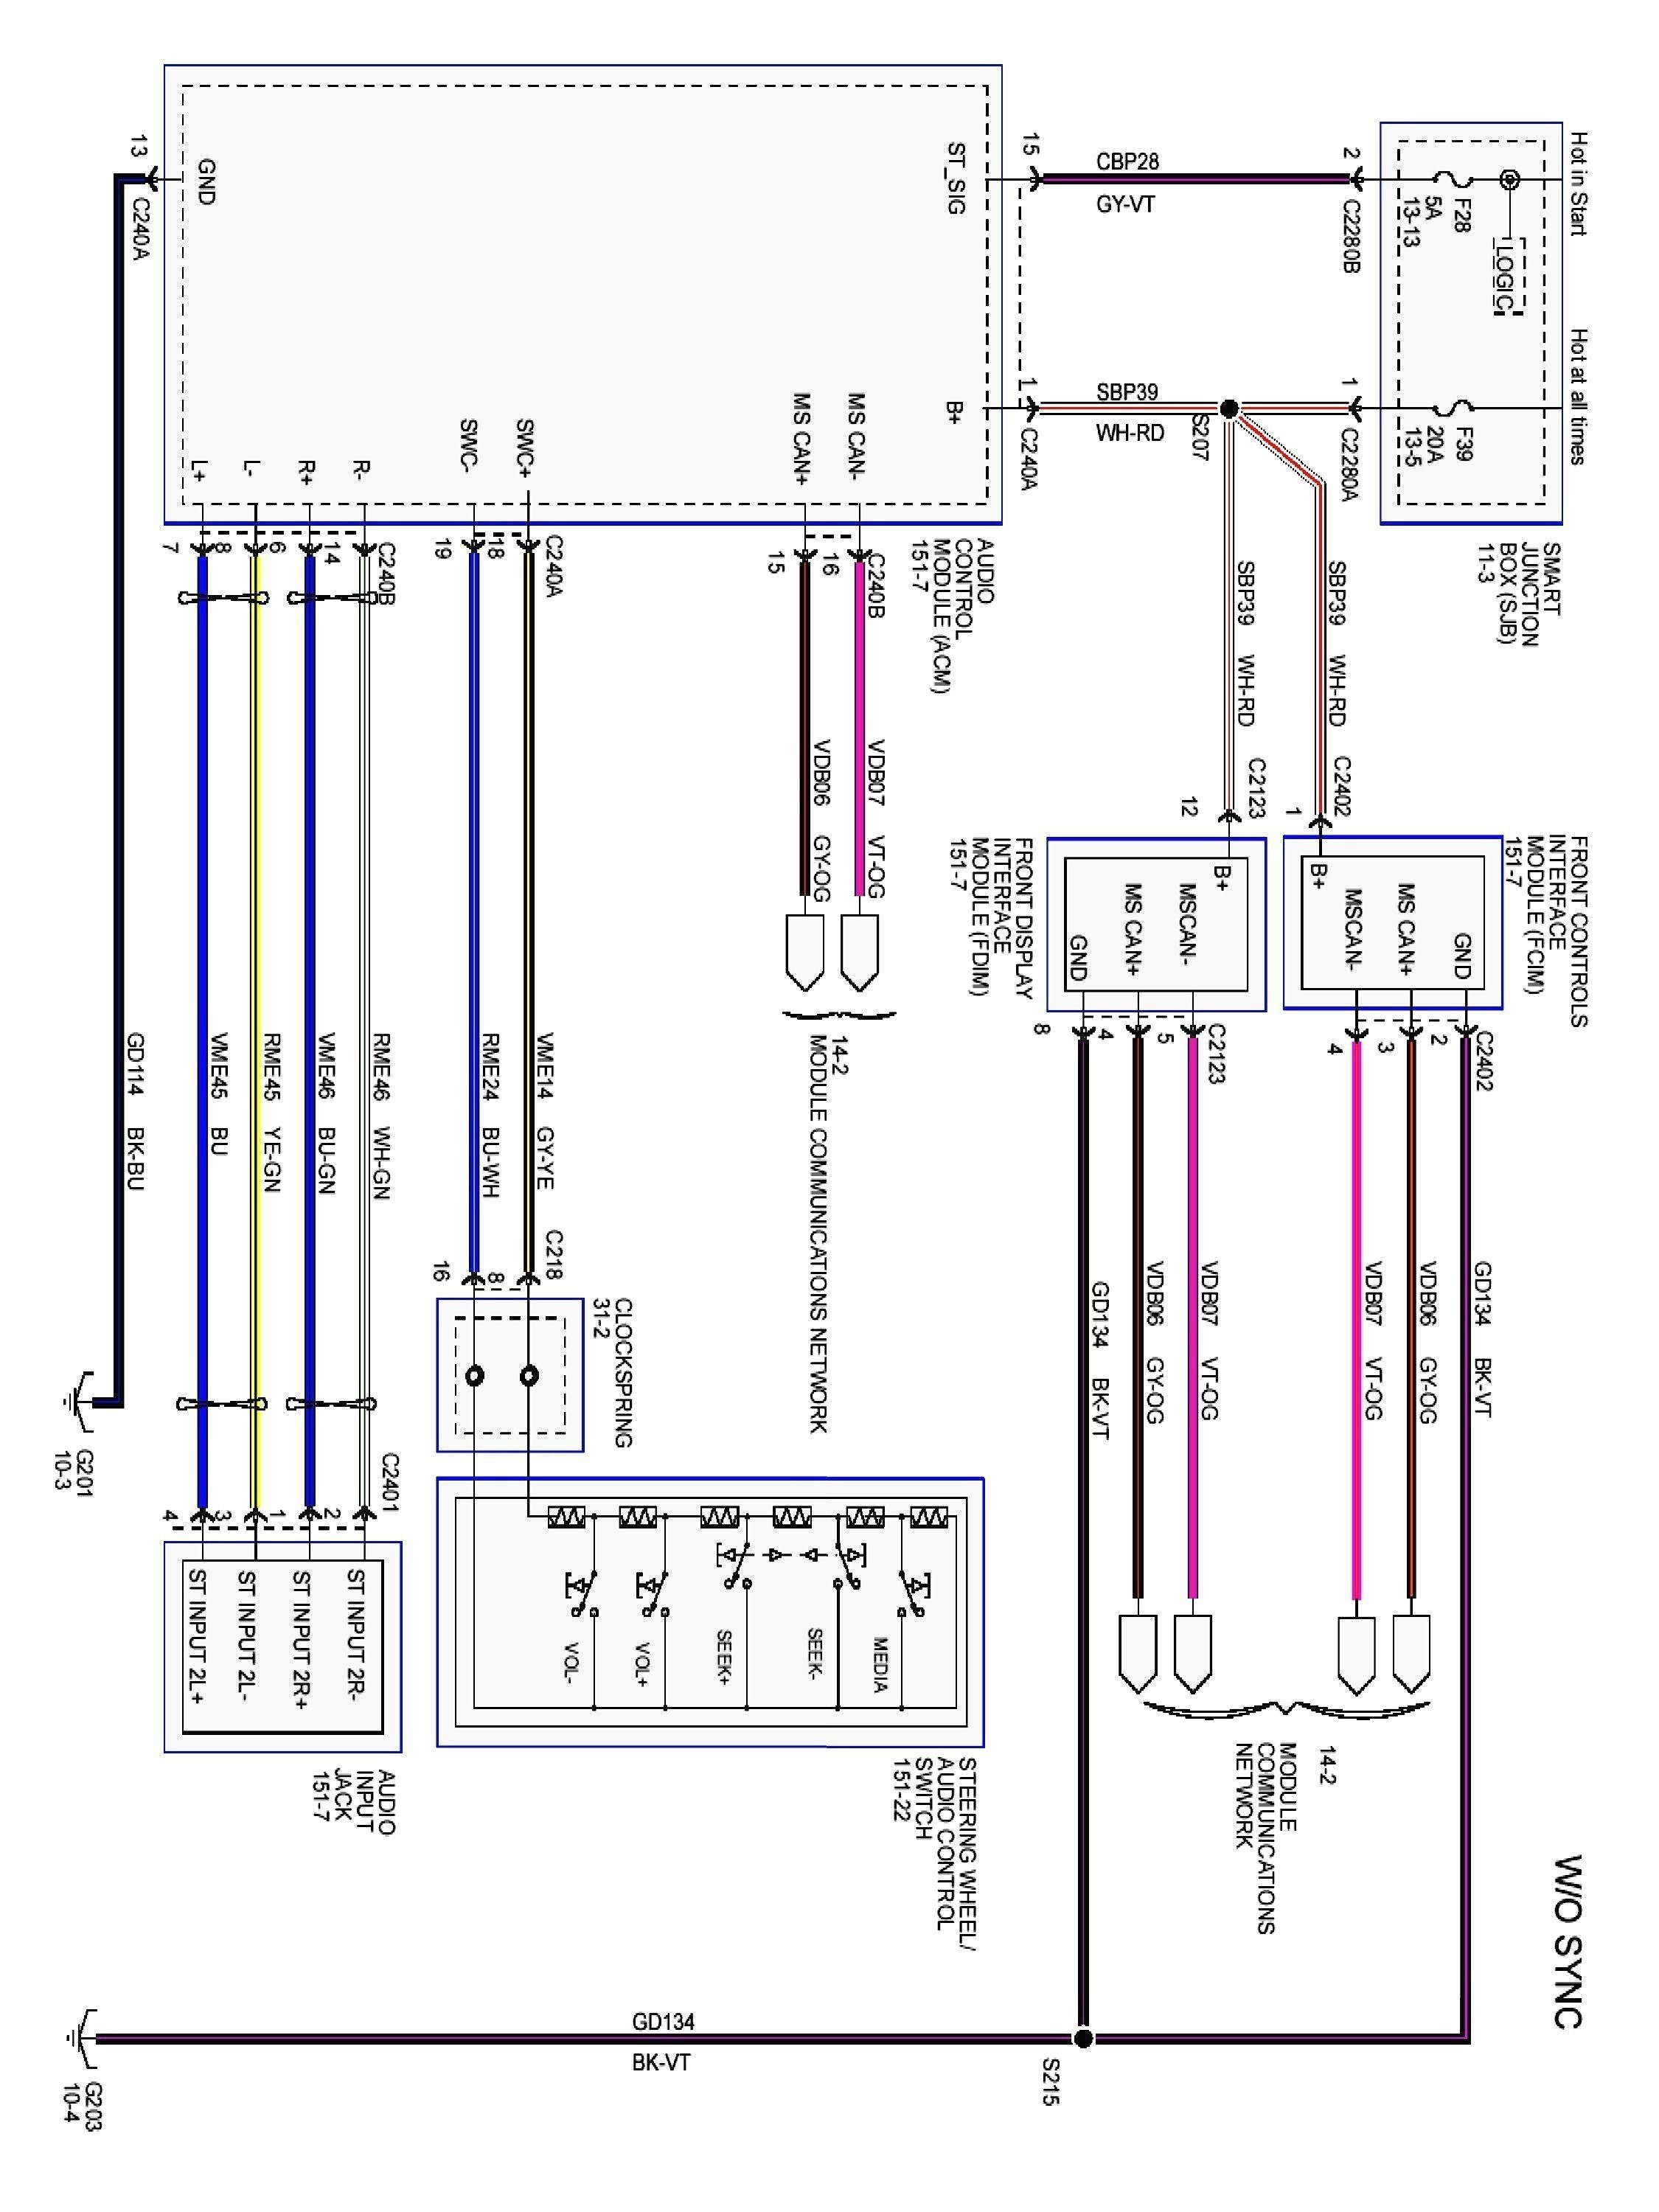 2012 ford fiesta wiring - wiring diagram page camp-freeze -  camp-freeze.faishoppingconsvitol.it  faishoppingconsvitol.it